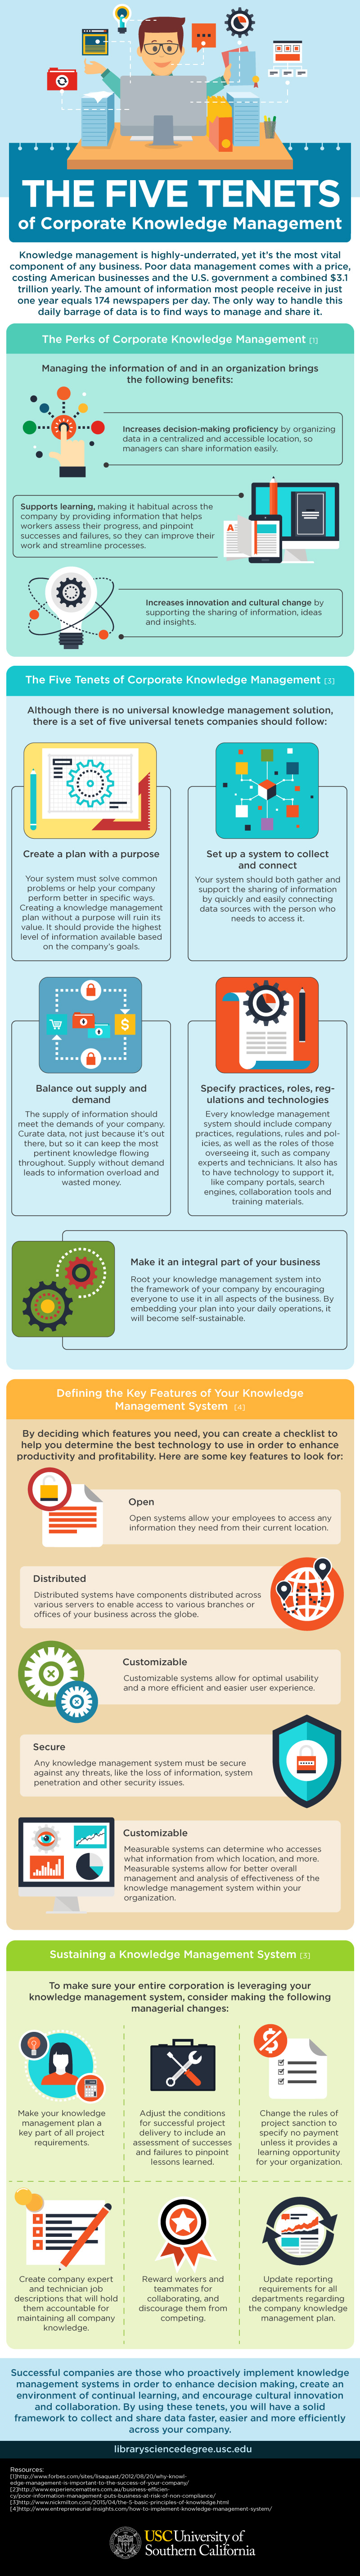 A Guide To Corporate Knowledge Management - Infographic